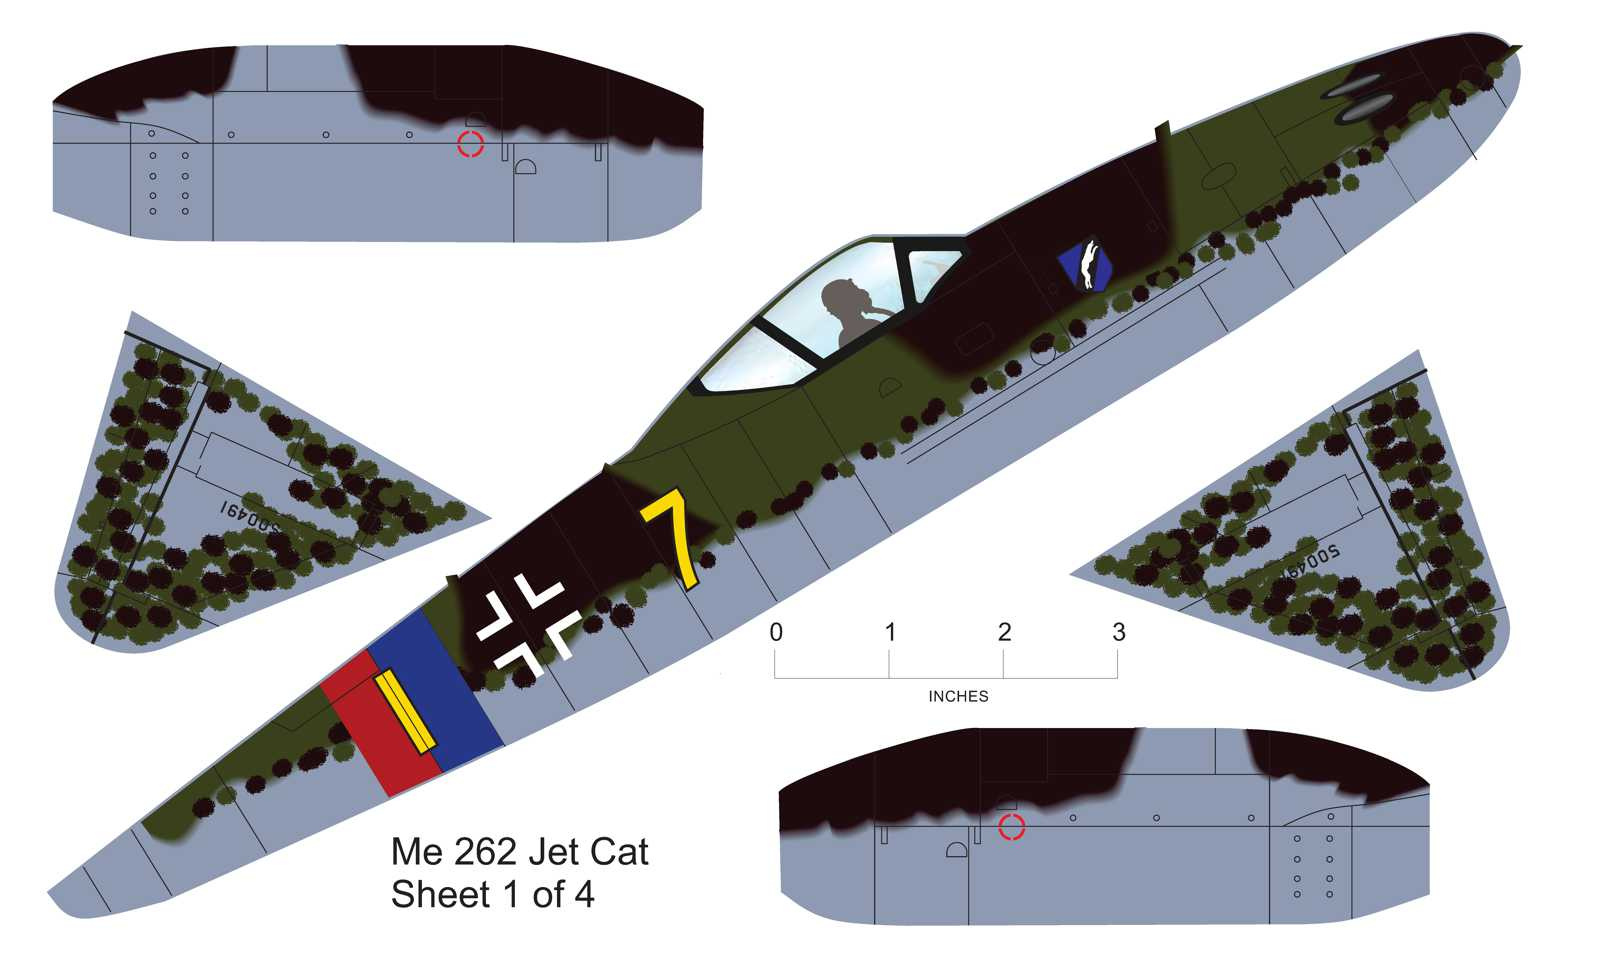 https://0201.nccdn.net/1_2/000/000/09b/8c0/Me-262-Jet-Cat-covering-layout-page-1600x971.jpg